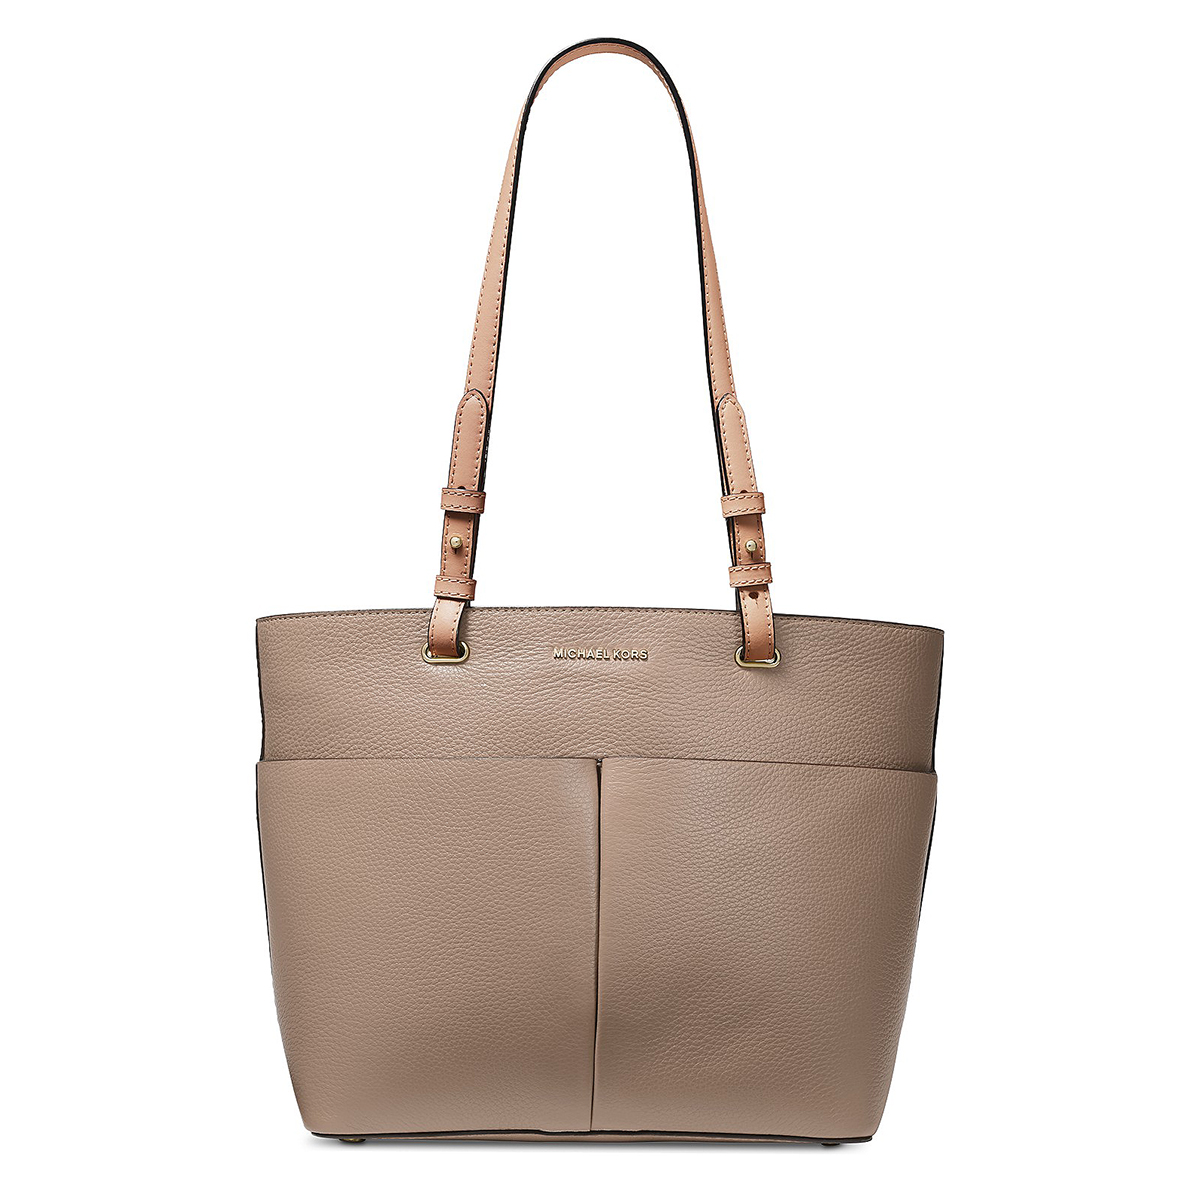 This Michael Kors Tote Is 100%-Recommended and Now Under $100